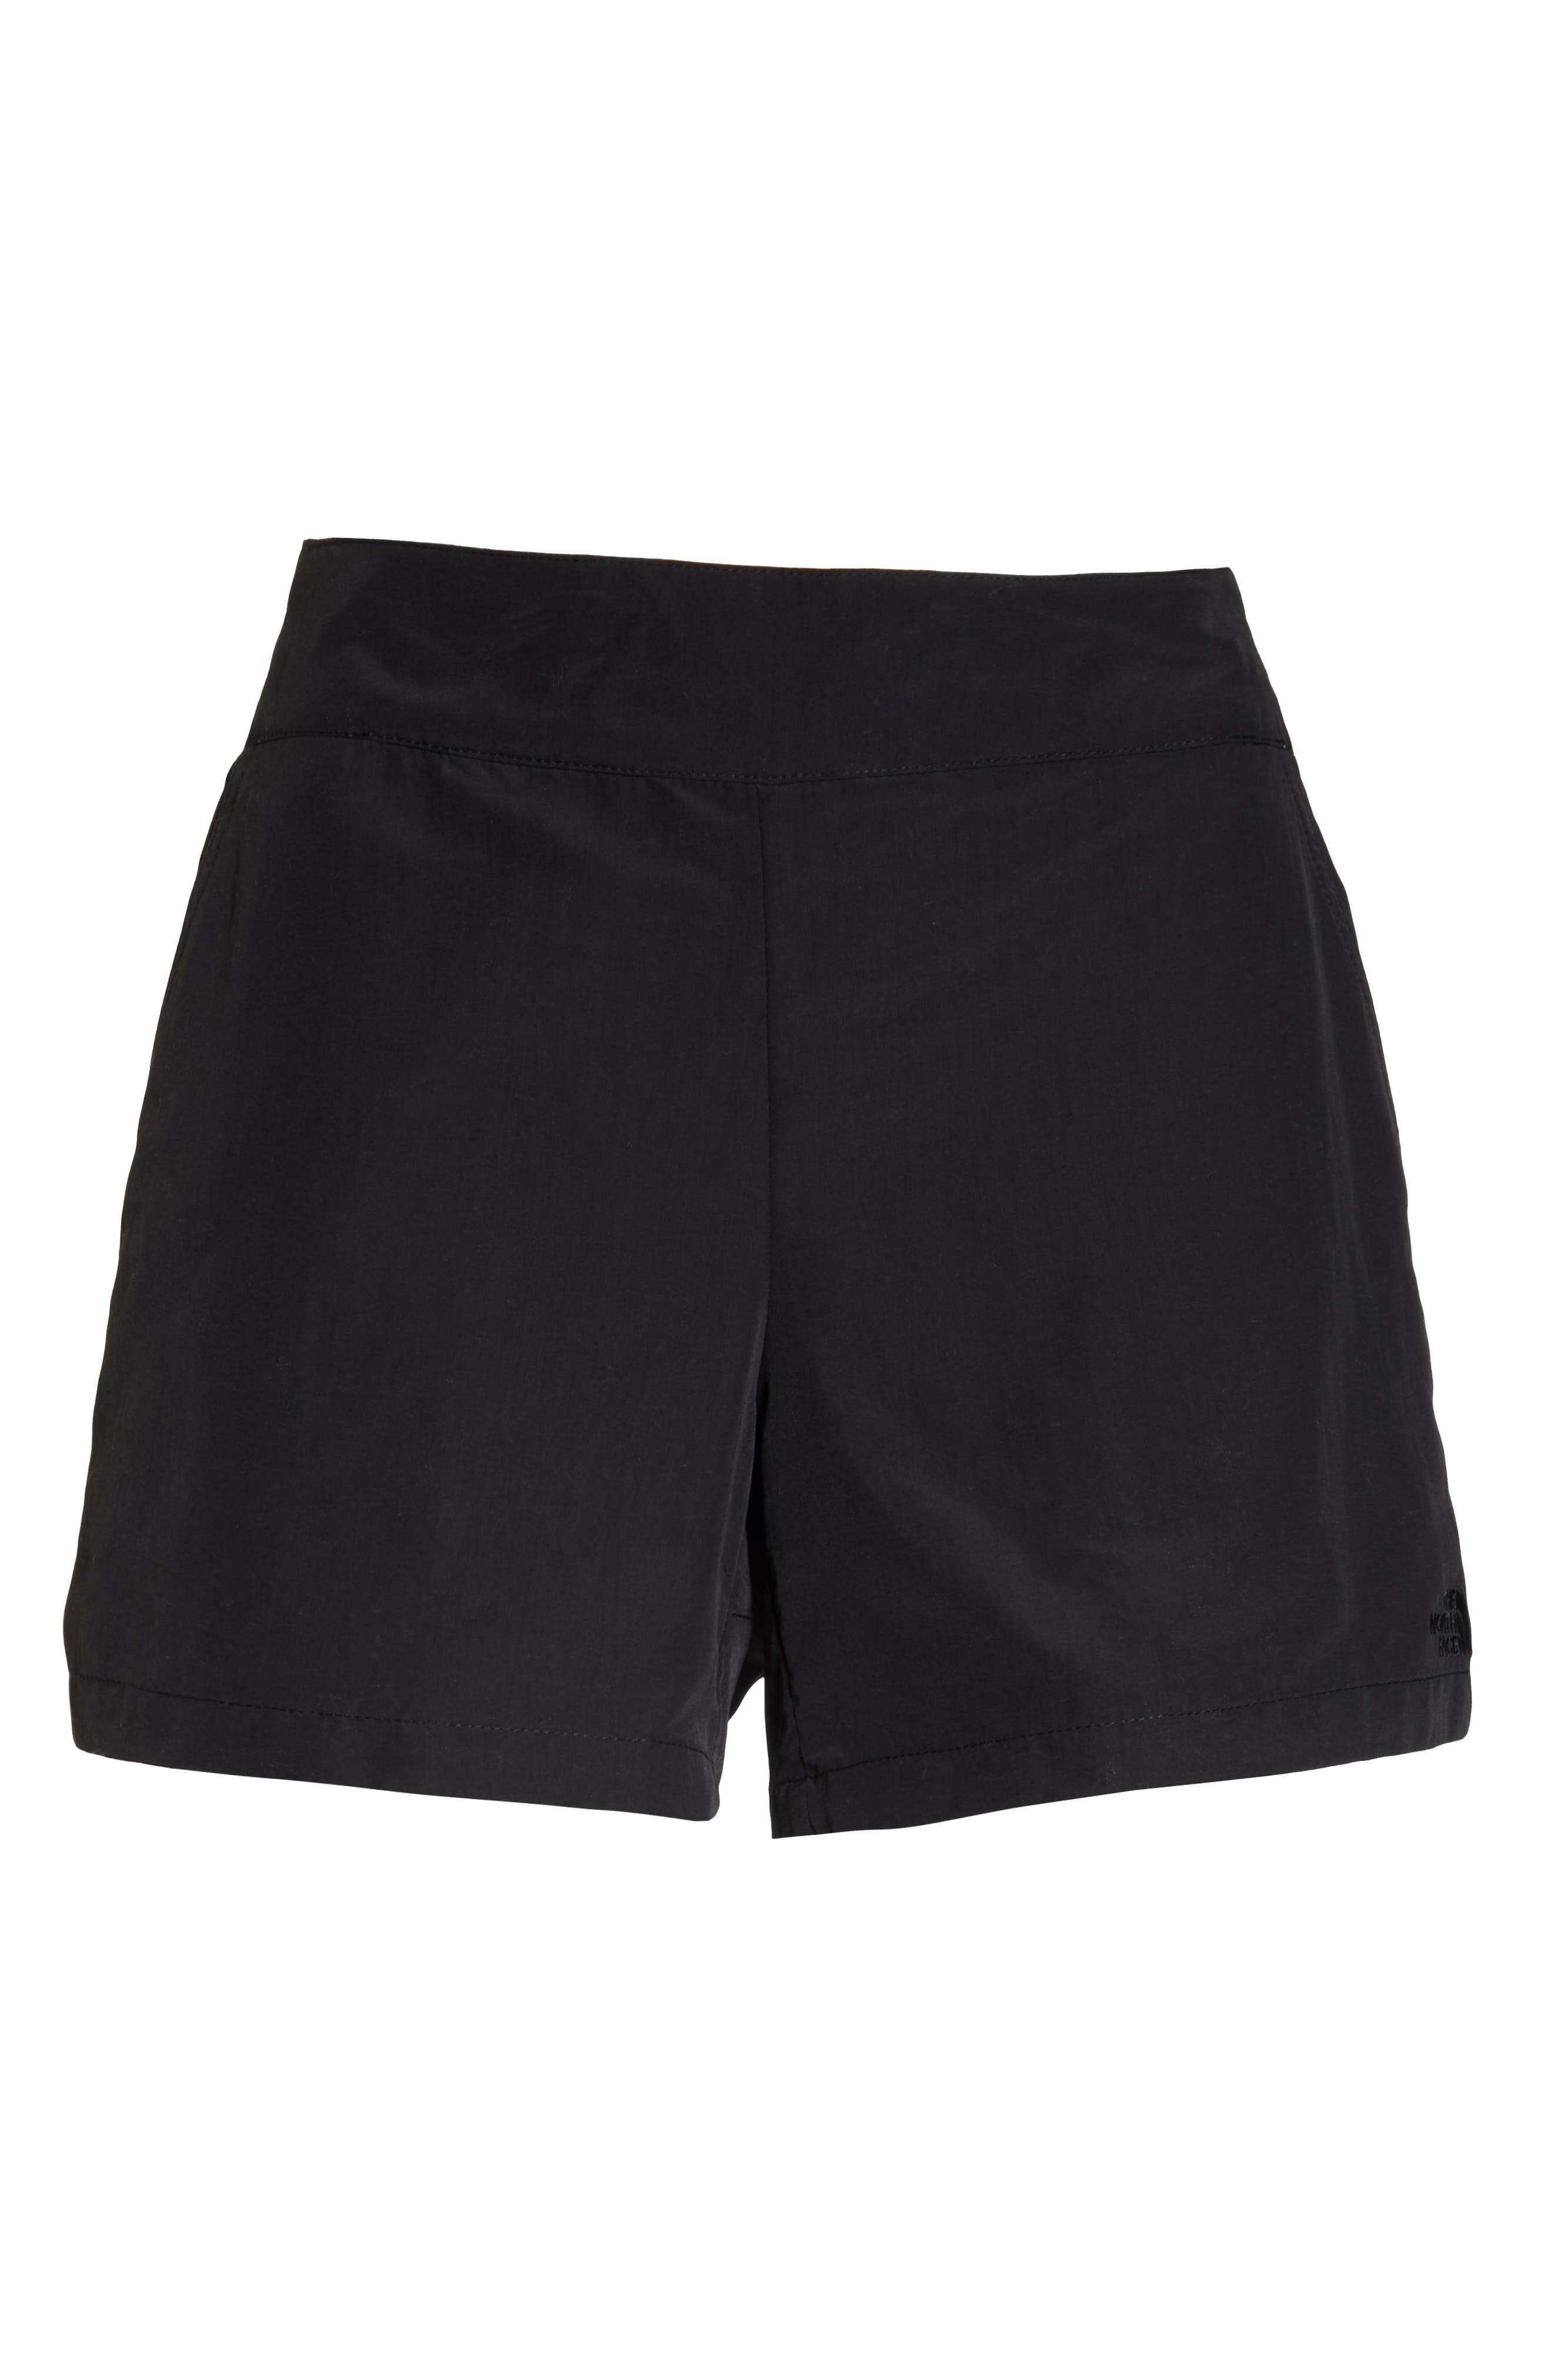 THE NORTH FACE,                             92 Rage Lounger Shorts,                             Alternate thumbnail 7, color,                             TNF BLACK